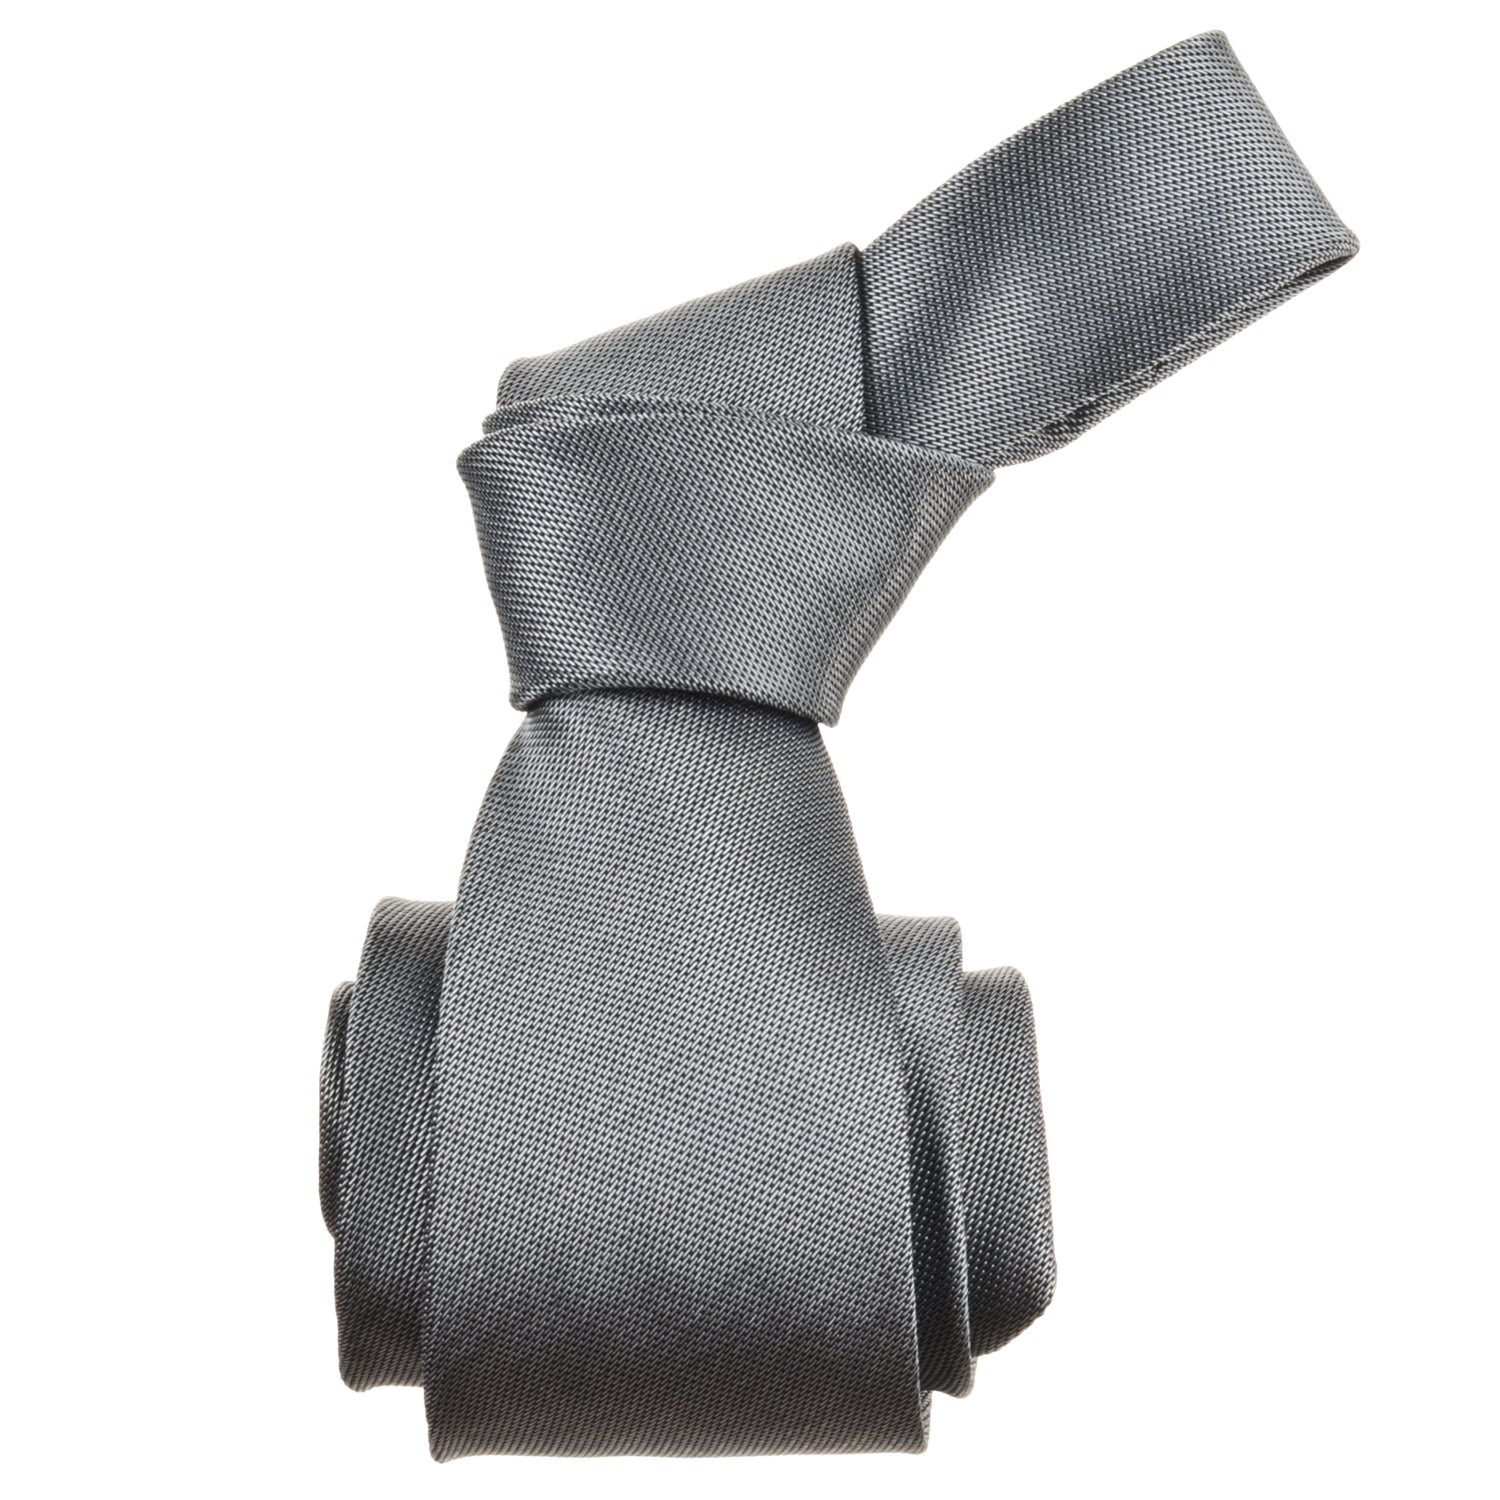 Republic Men's Solid Grey Tie